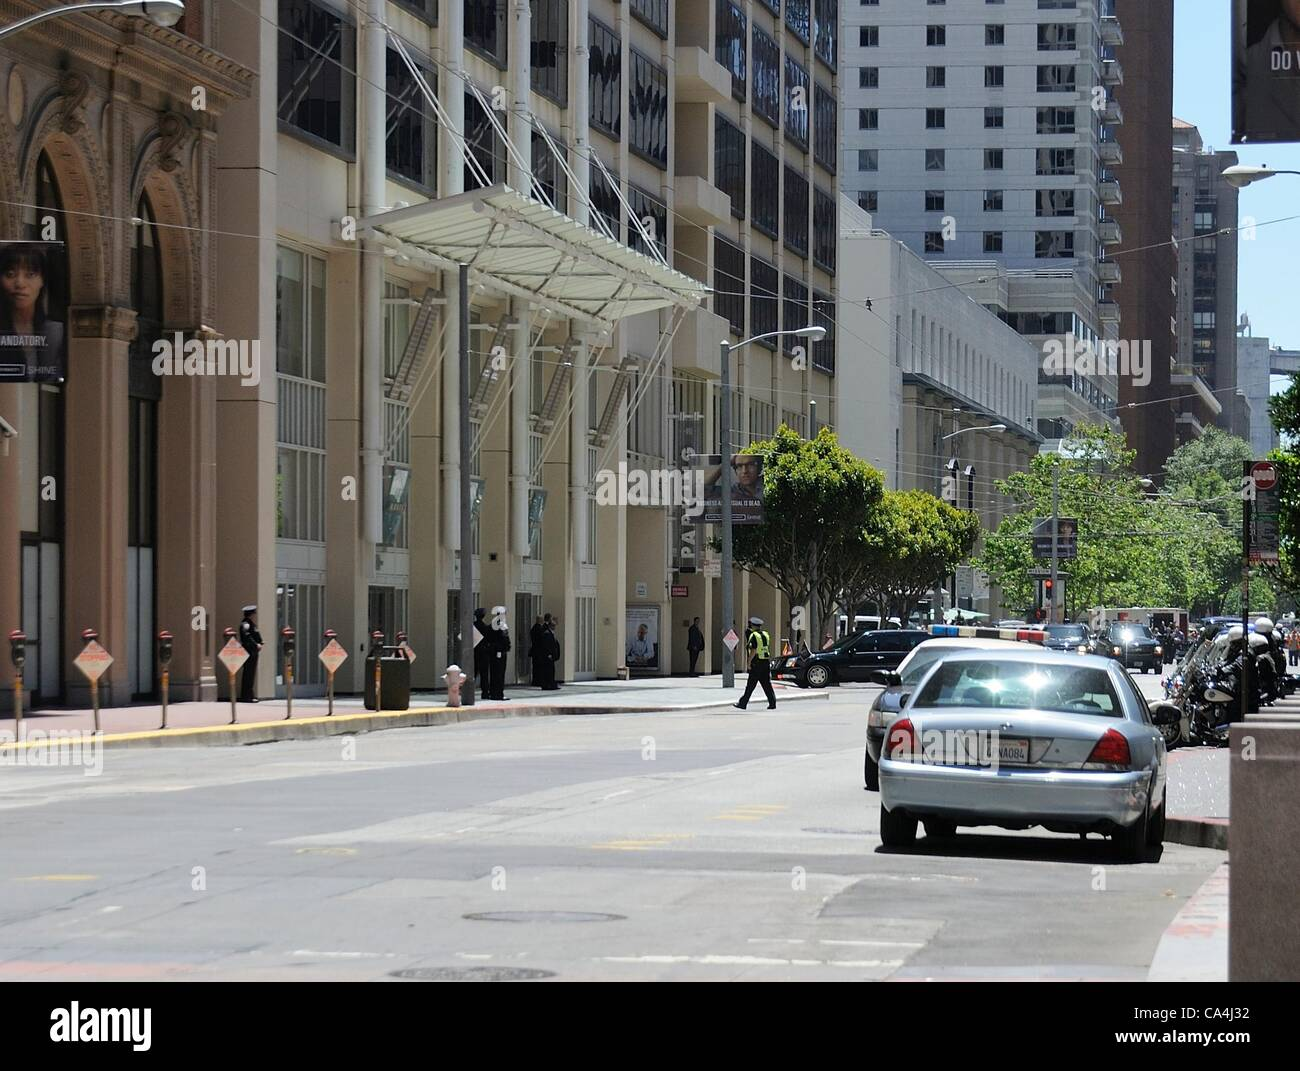 San Francisco, California, USA - June 06, 2012: President Obama's limousine turns into the parking garage in - Stock Image